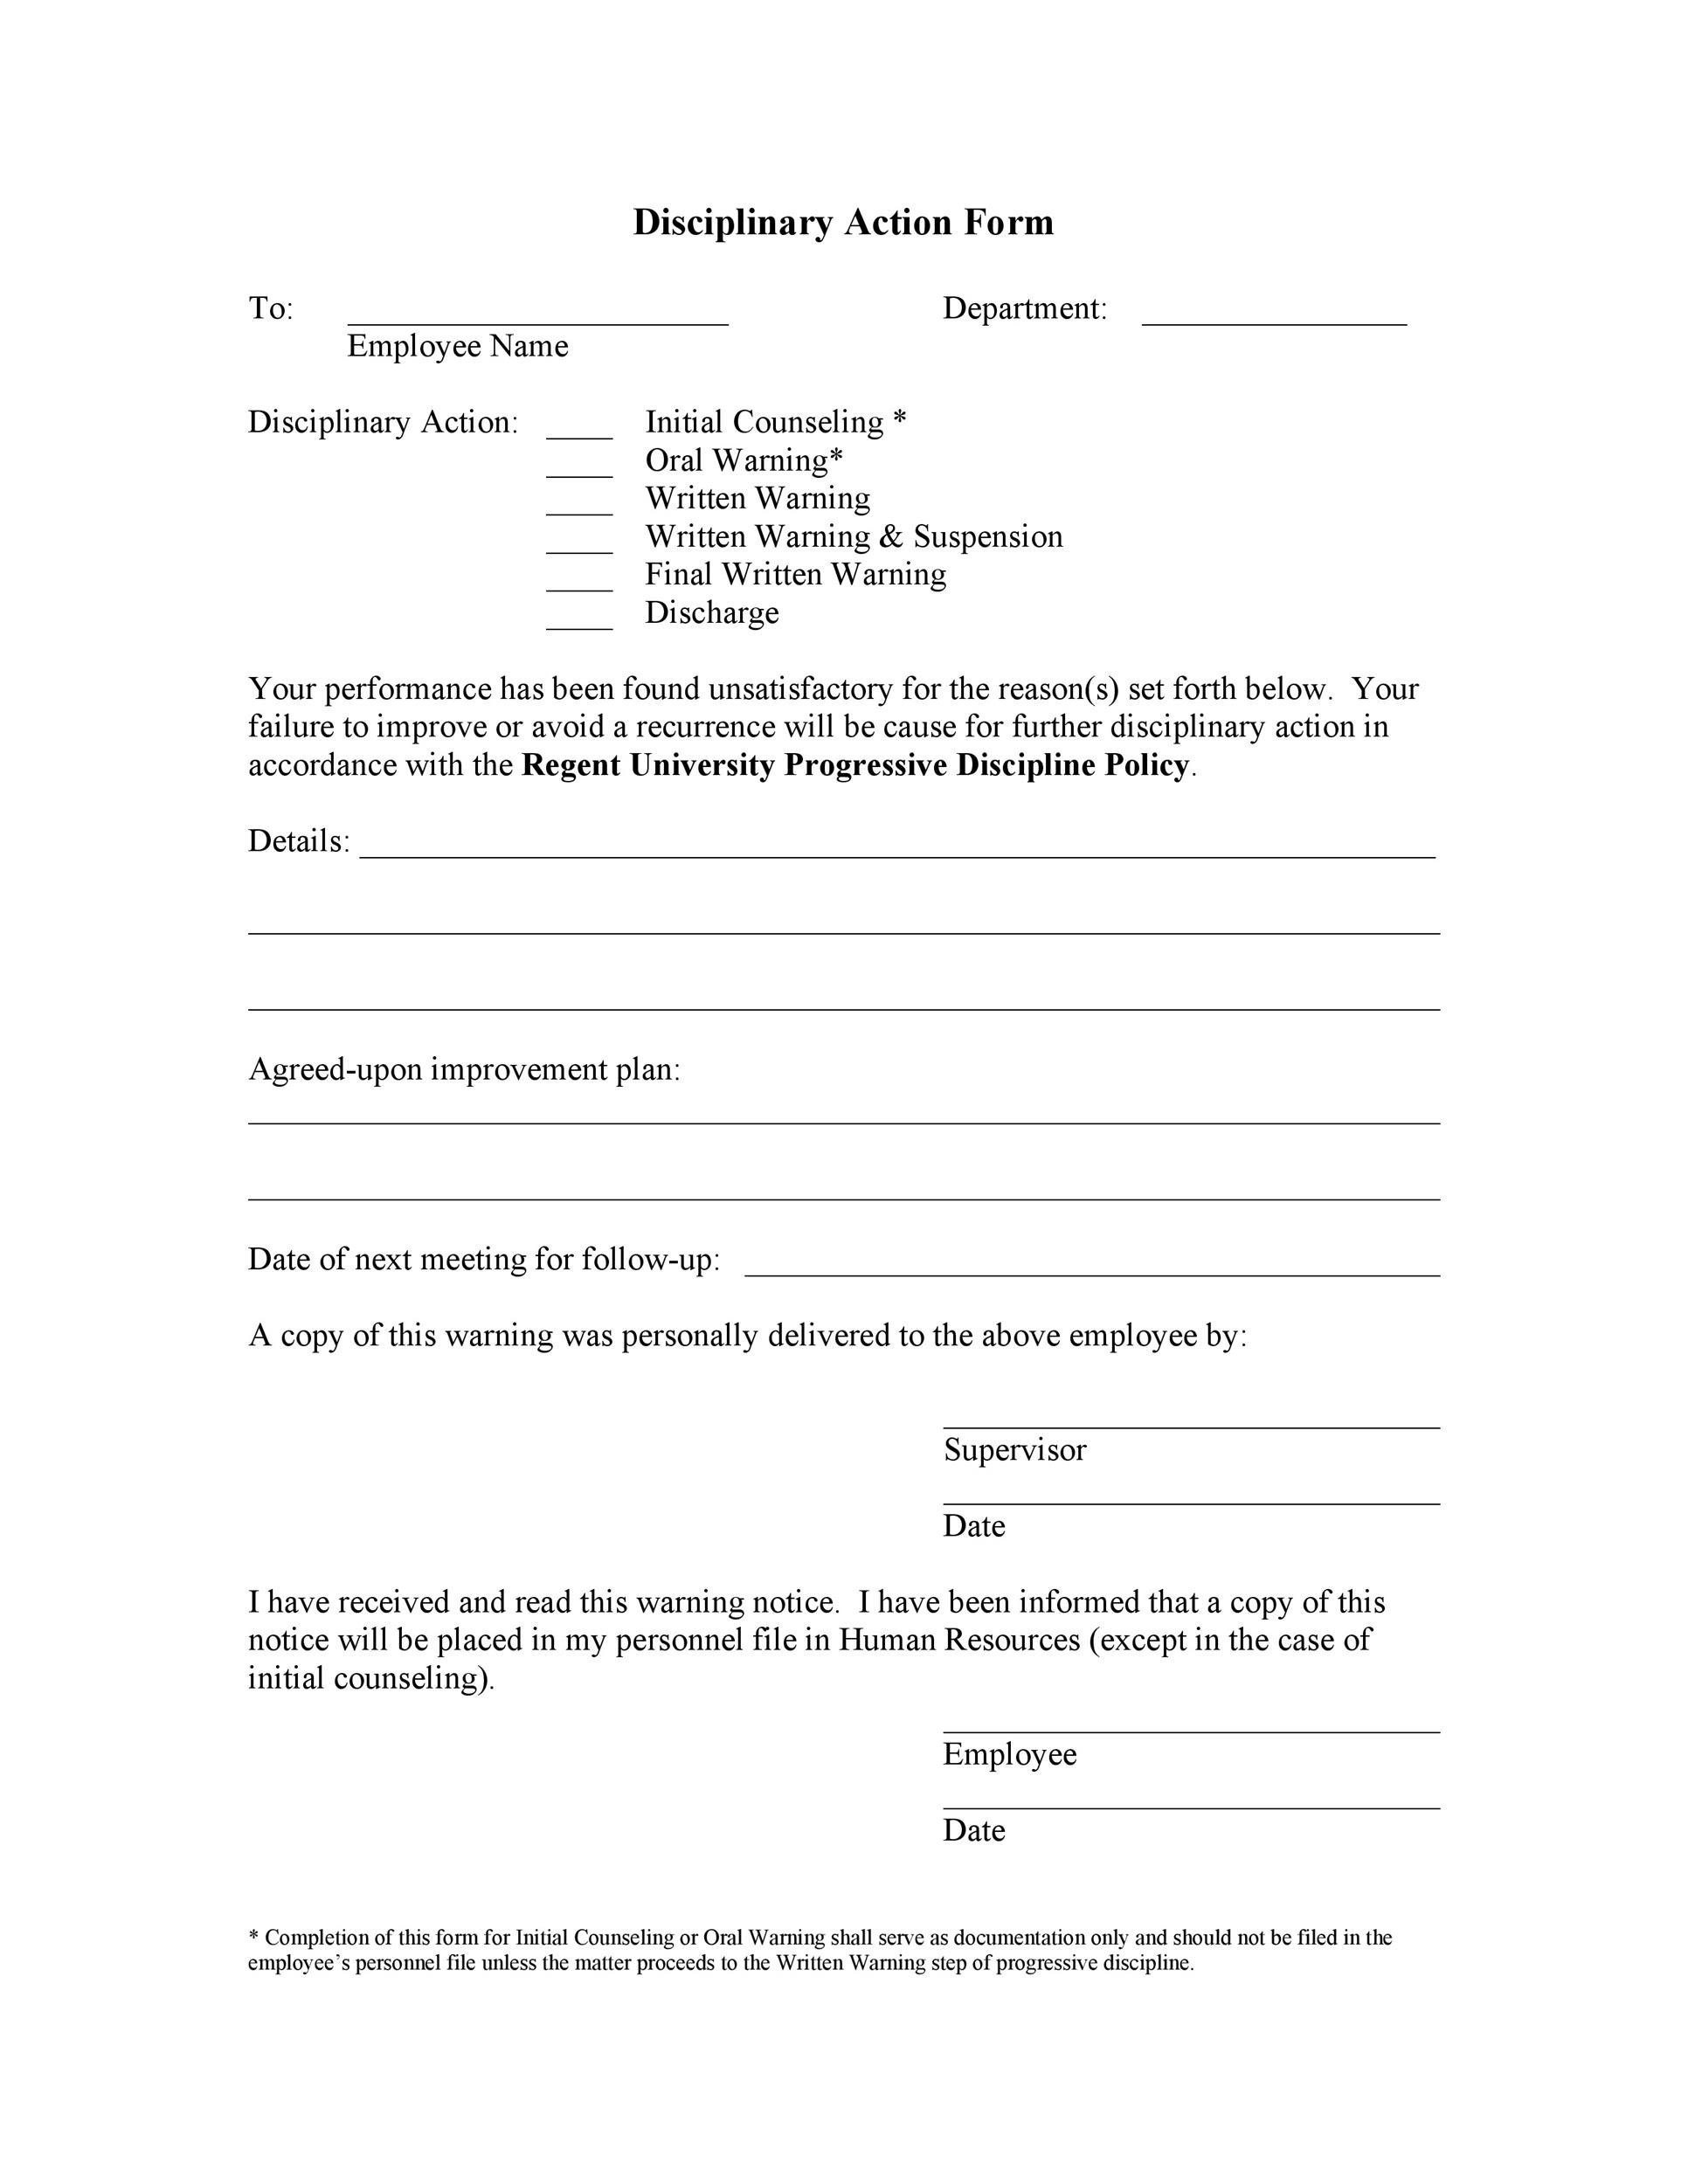 46 Effective Employee Write Up Forms Disciplinary Action Forms – Employee Counseling Form